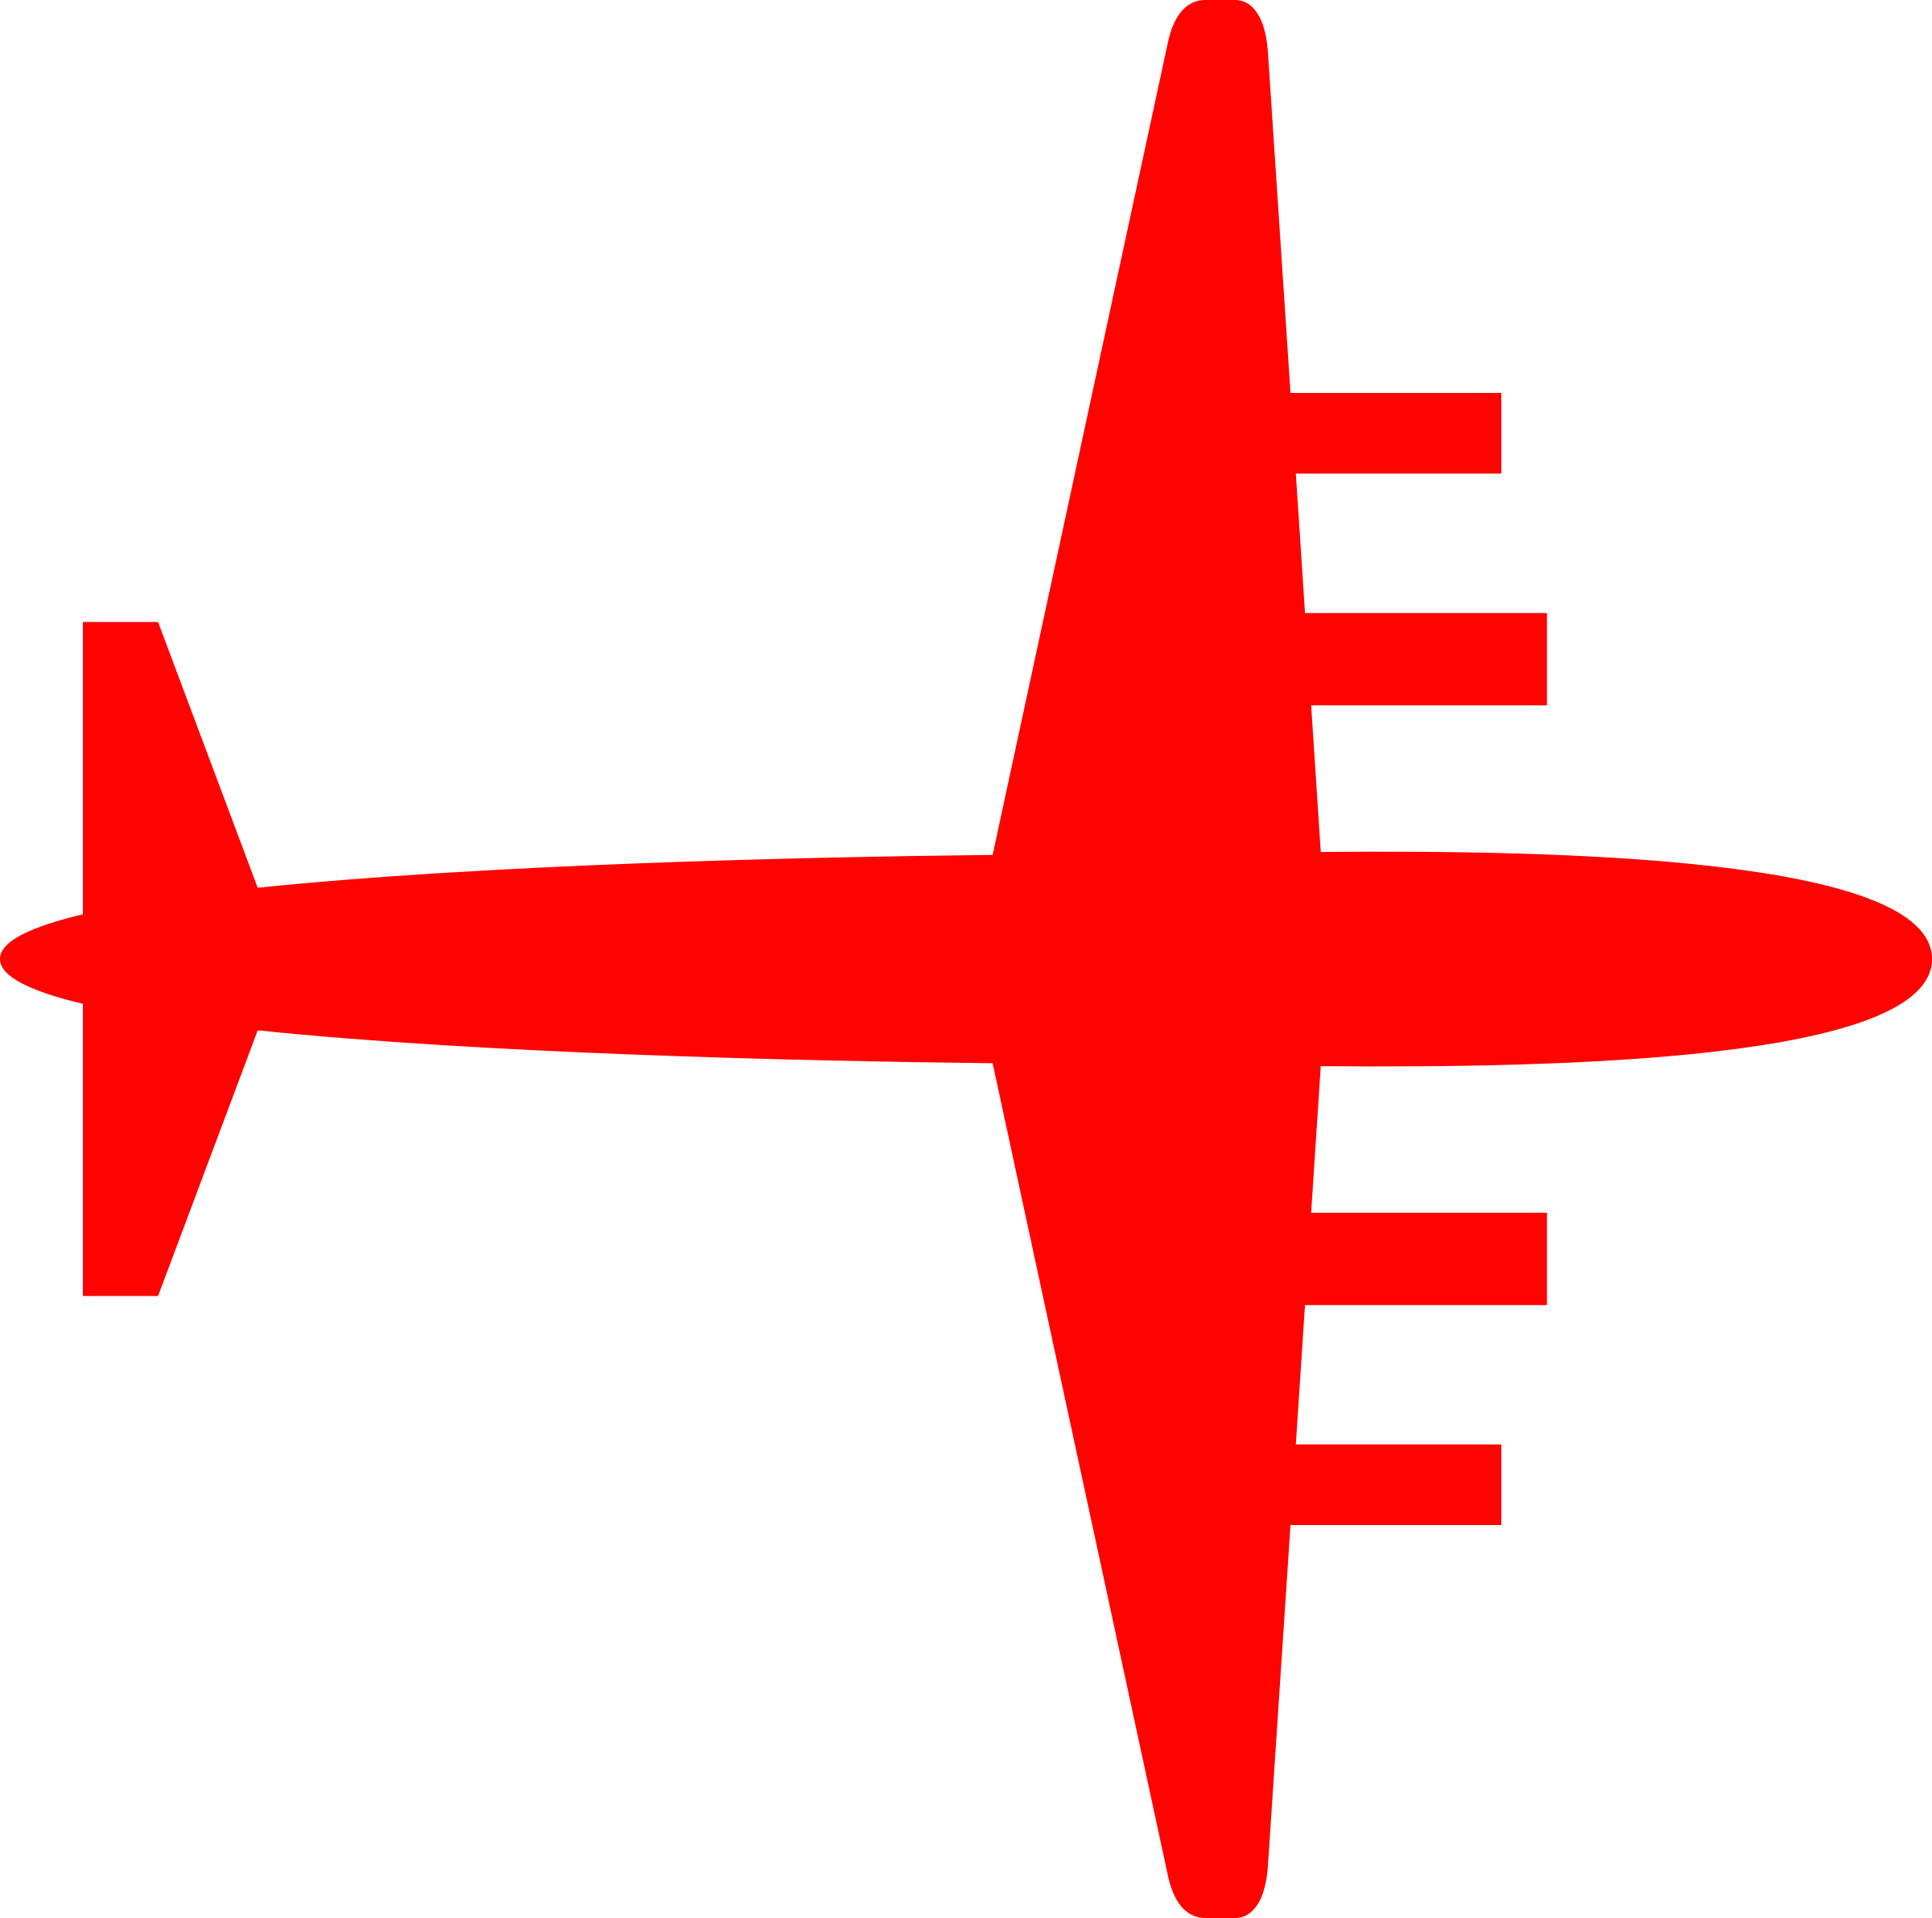 Silhouette big image png. Clipart plane red